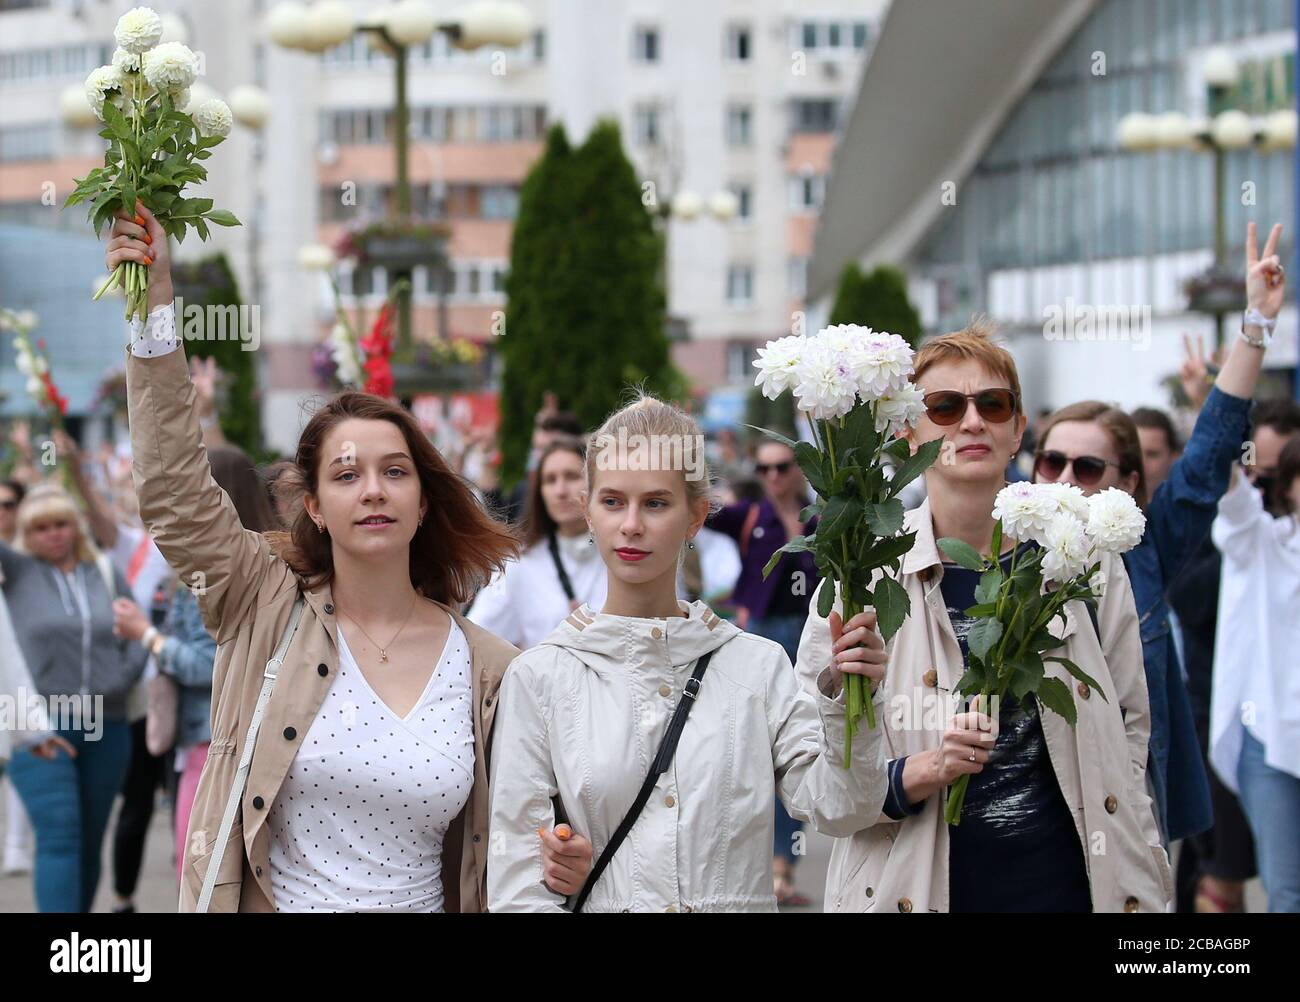 Minsk, Belarus. 12th Aug, 2020. Women take part in an event in support of detained and injured participants in mass protests. Mass protests against the results of the 2020 Belarusian presidential election erupted in major cities across Belarus in the evening of August 9. Credit: Natalia Fedosenko/TASS/Alamy Live News Stock Photo